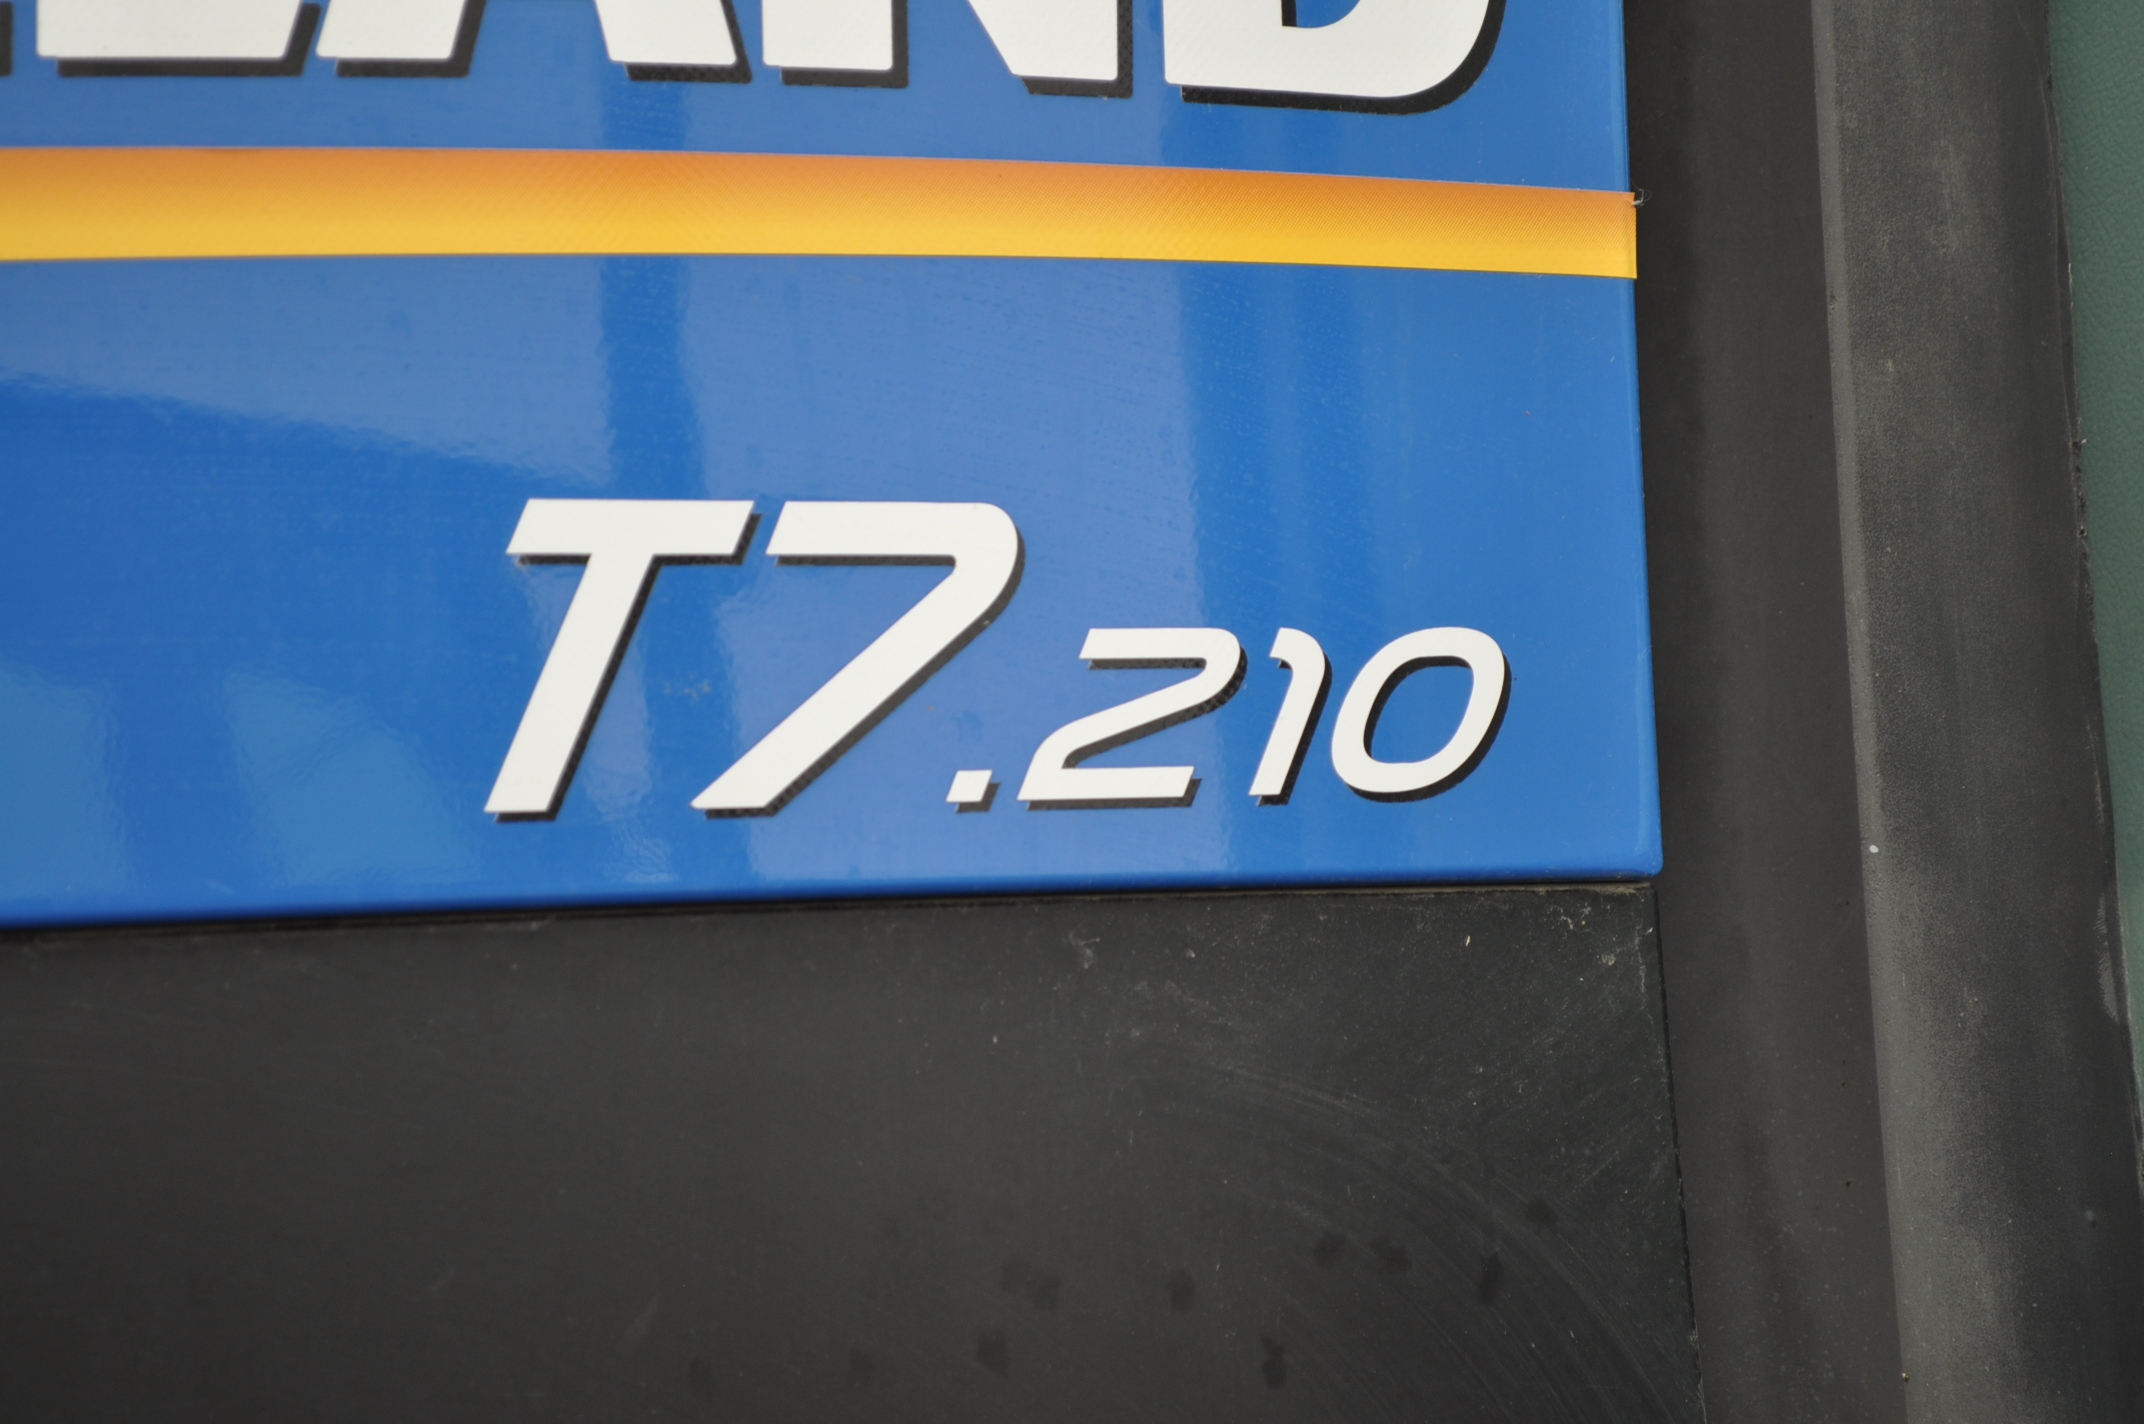 New Holland T7.210 MFWD tractor, 460/85 R 42 rear, 380/85 R 30 Firestone front, Super Steer - Image 14 of 24